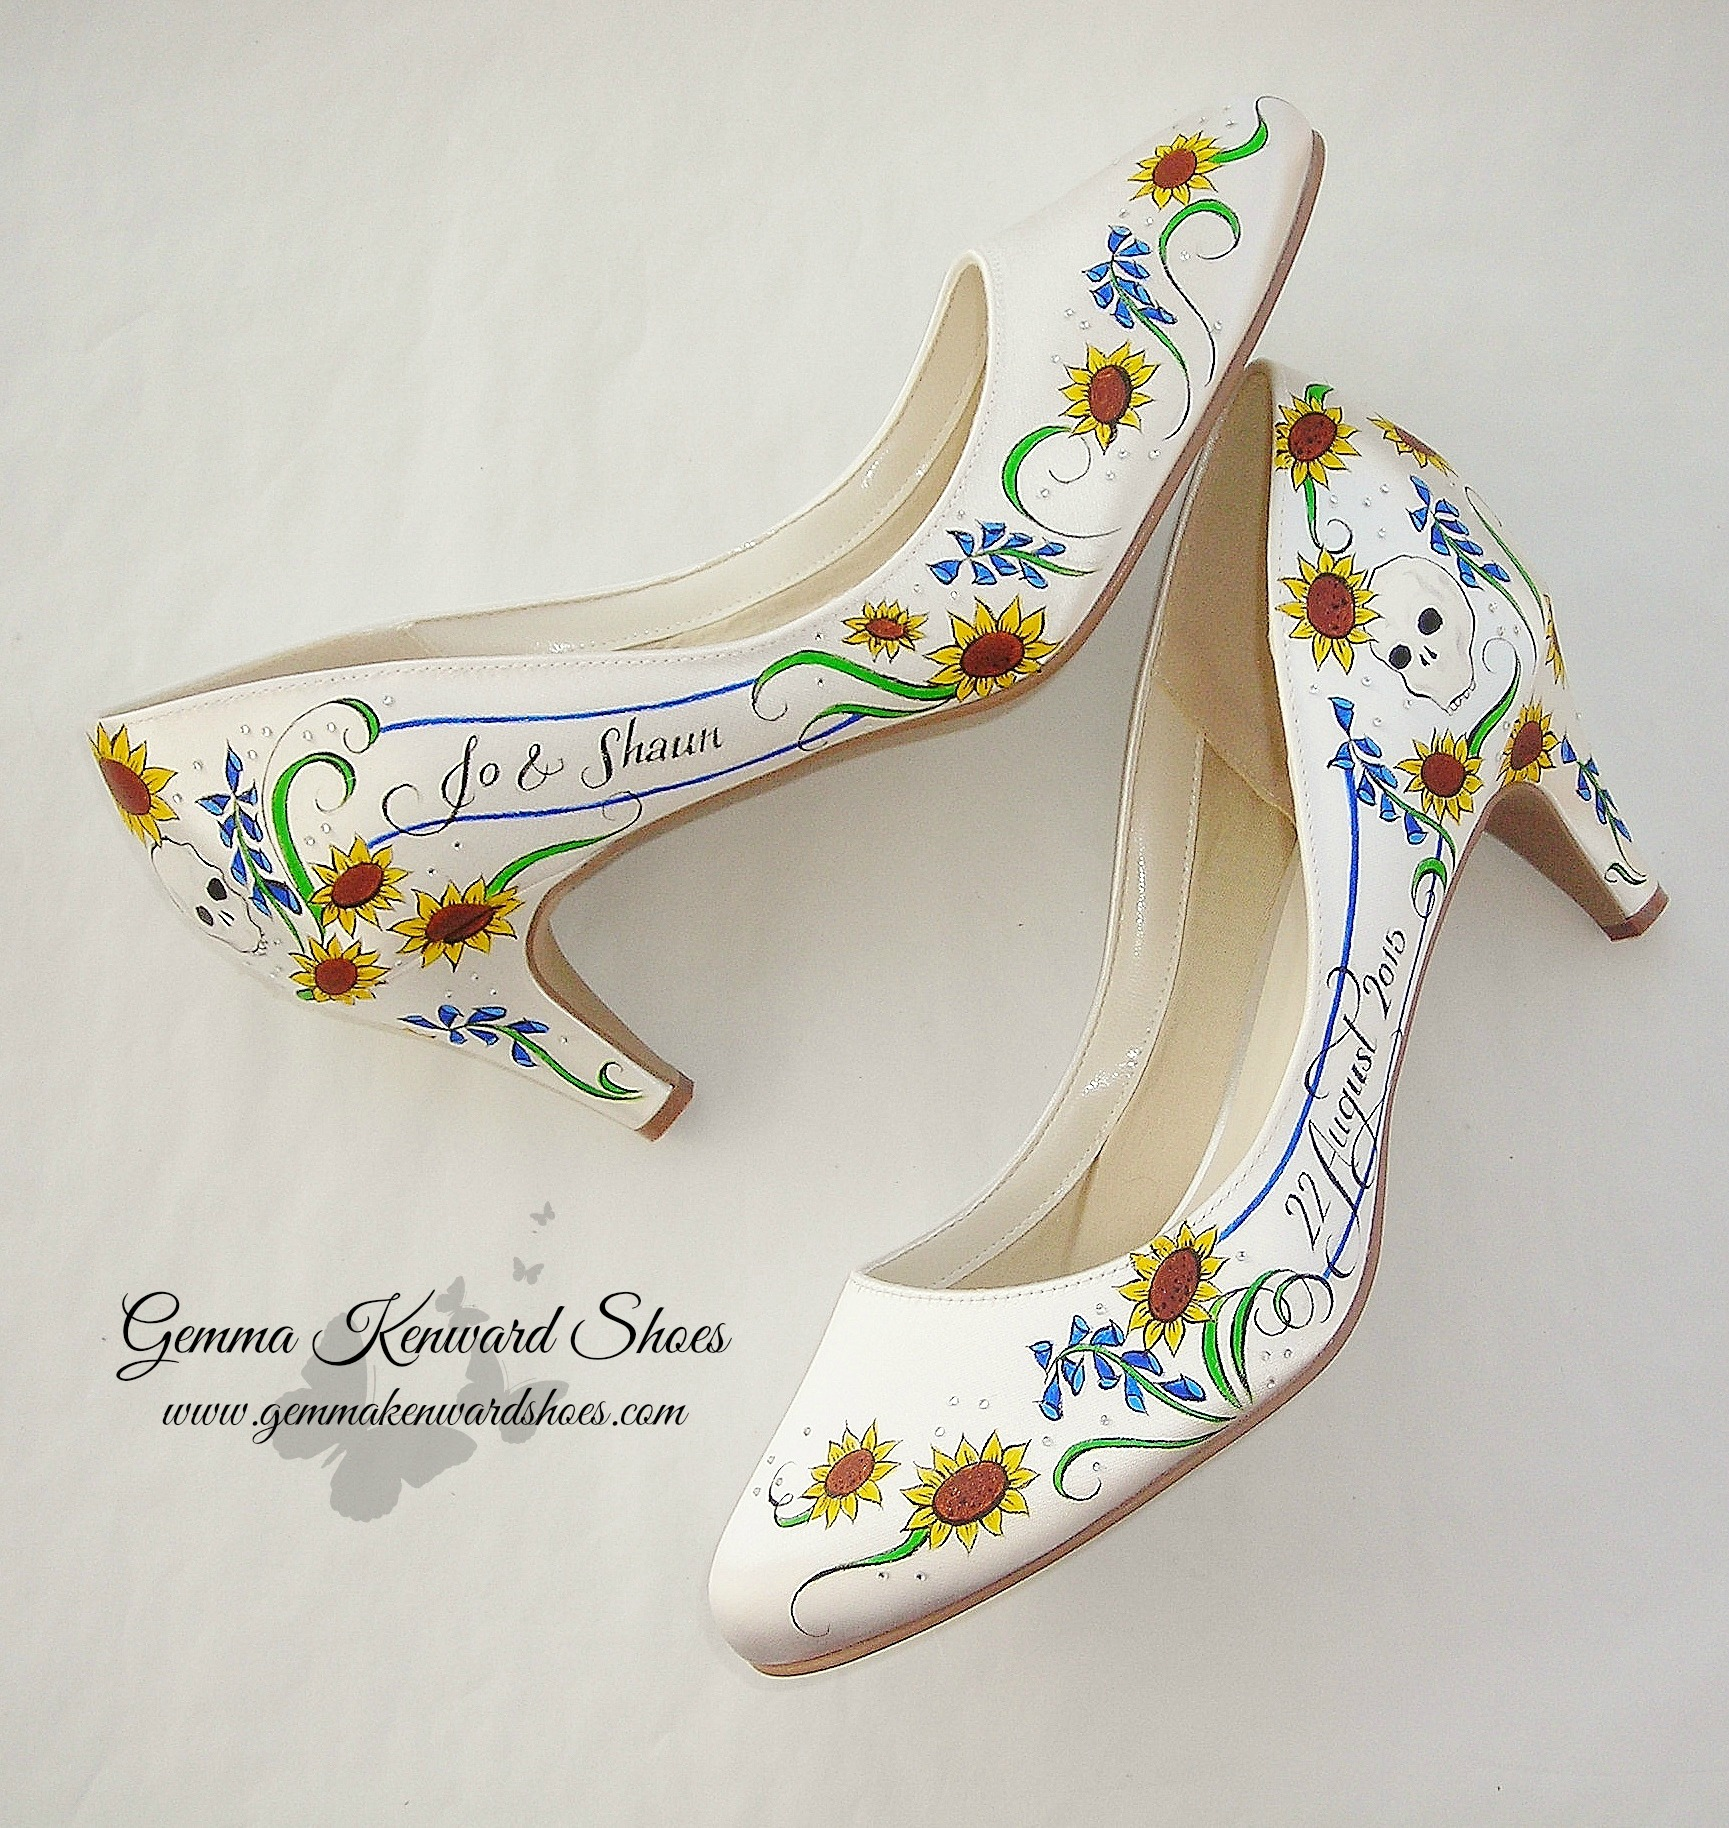 Personalised bridal shoes for a bride with flowers and skulls, adorned with diamonds / diamantes